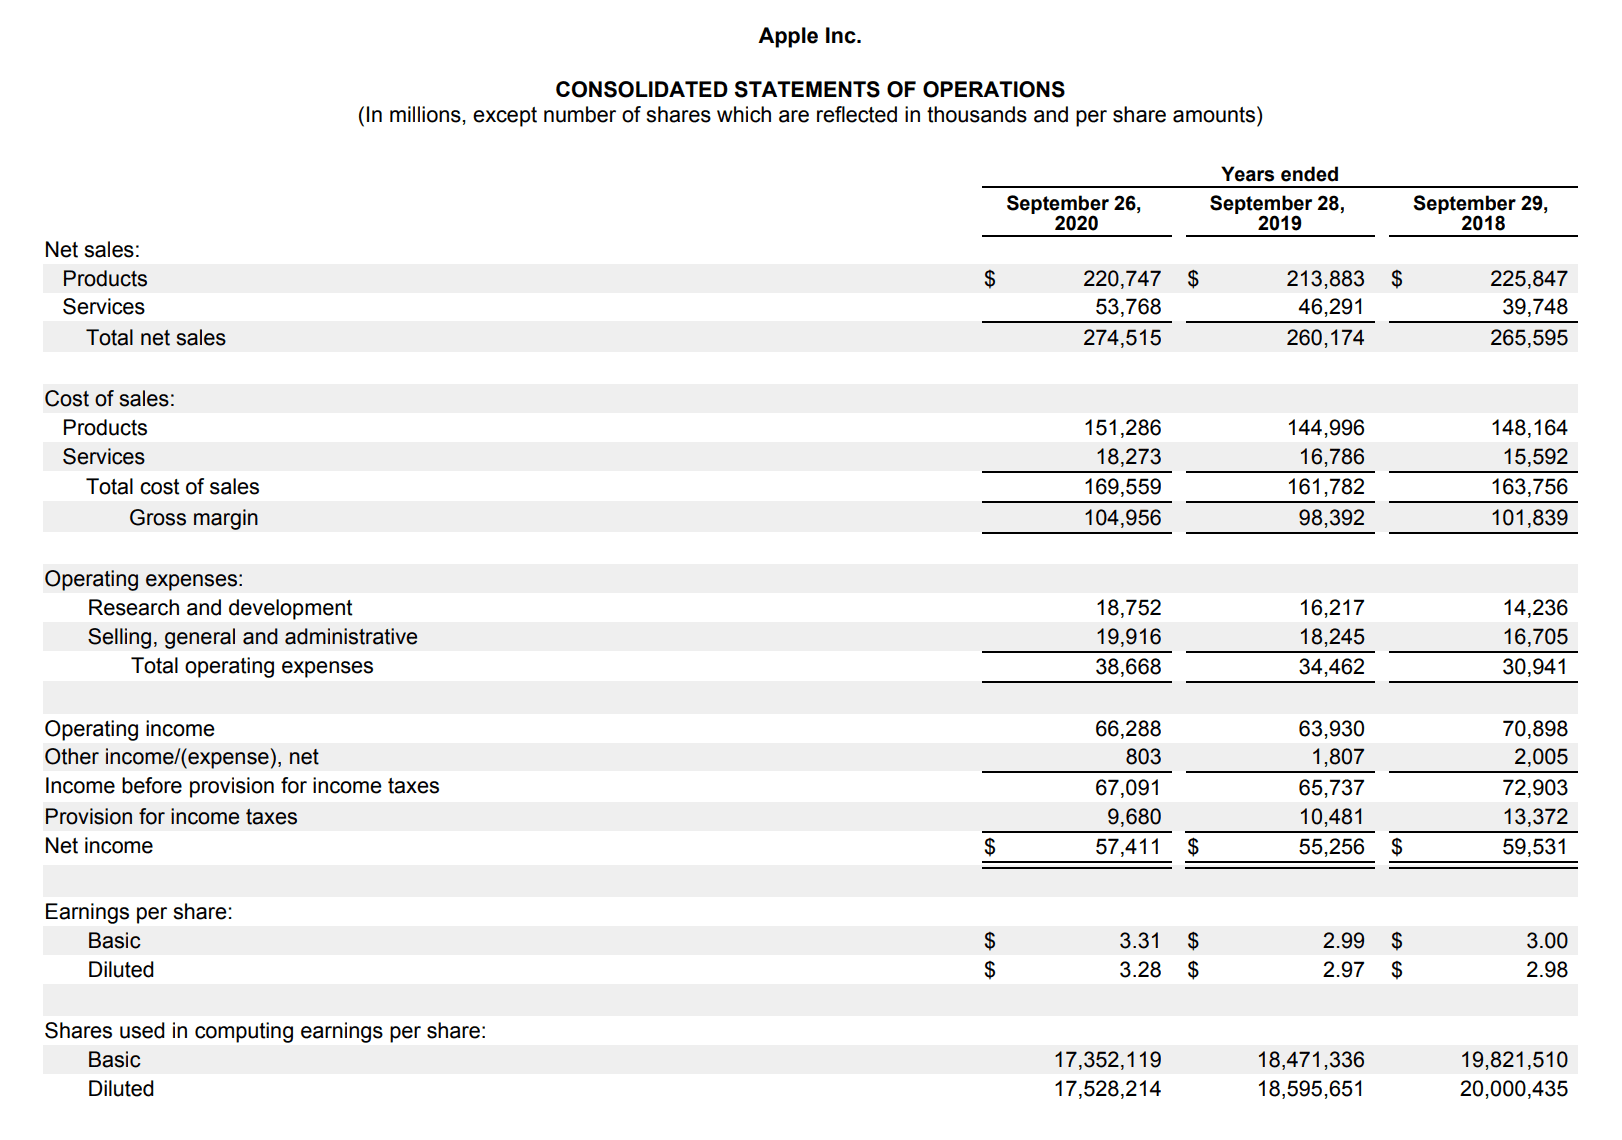 APPLE Consolidated Statements of Operations